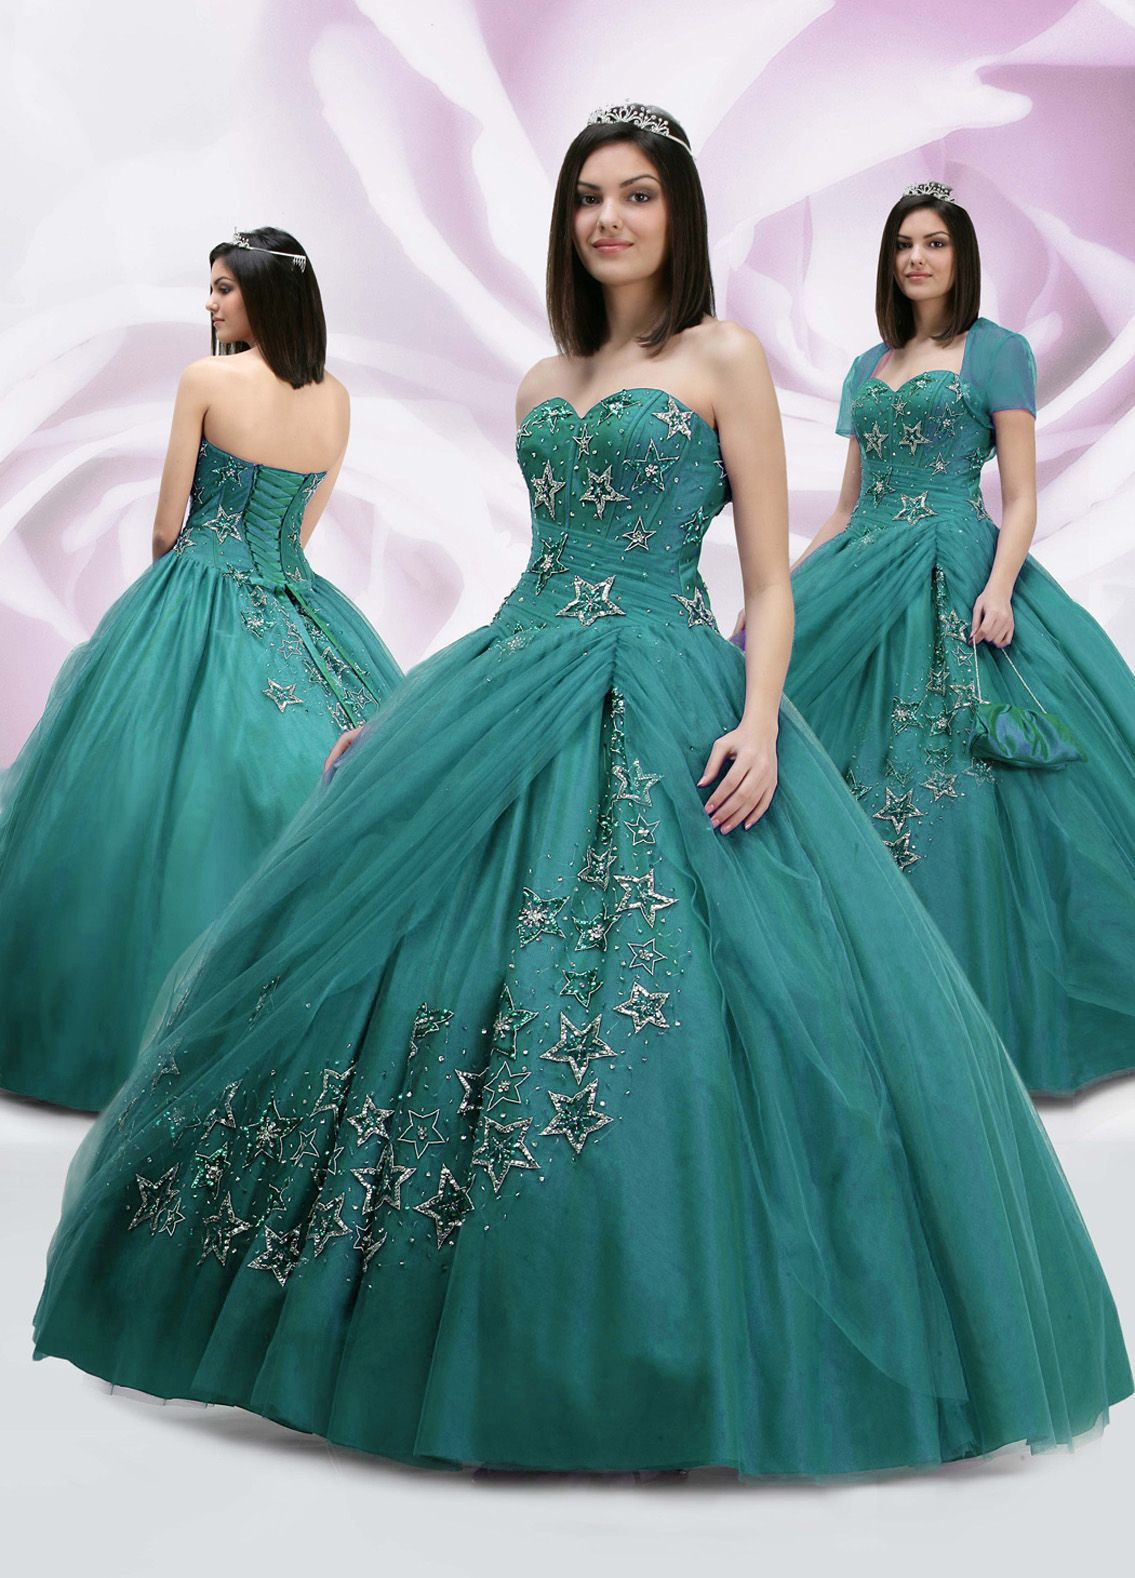 Teal,Princess Appliques and Beading Strapless Floor-length Turqiouse ...